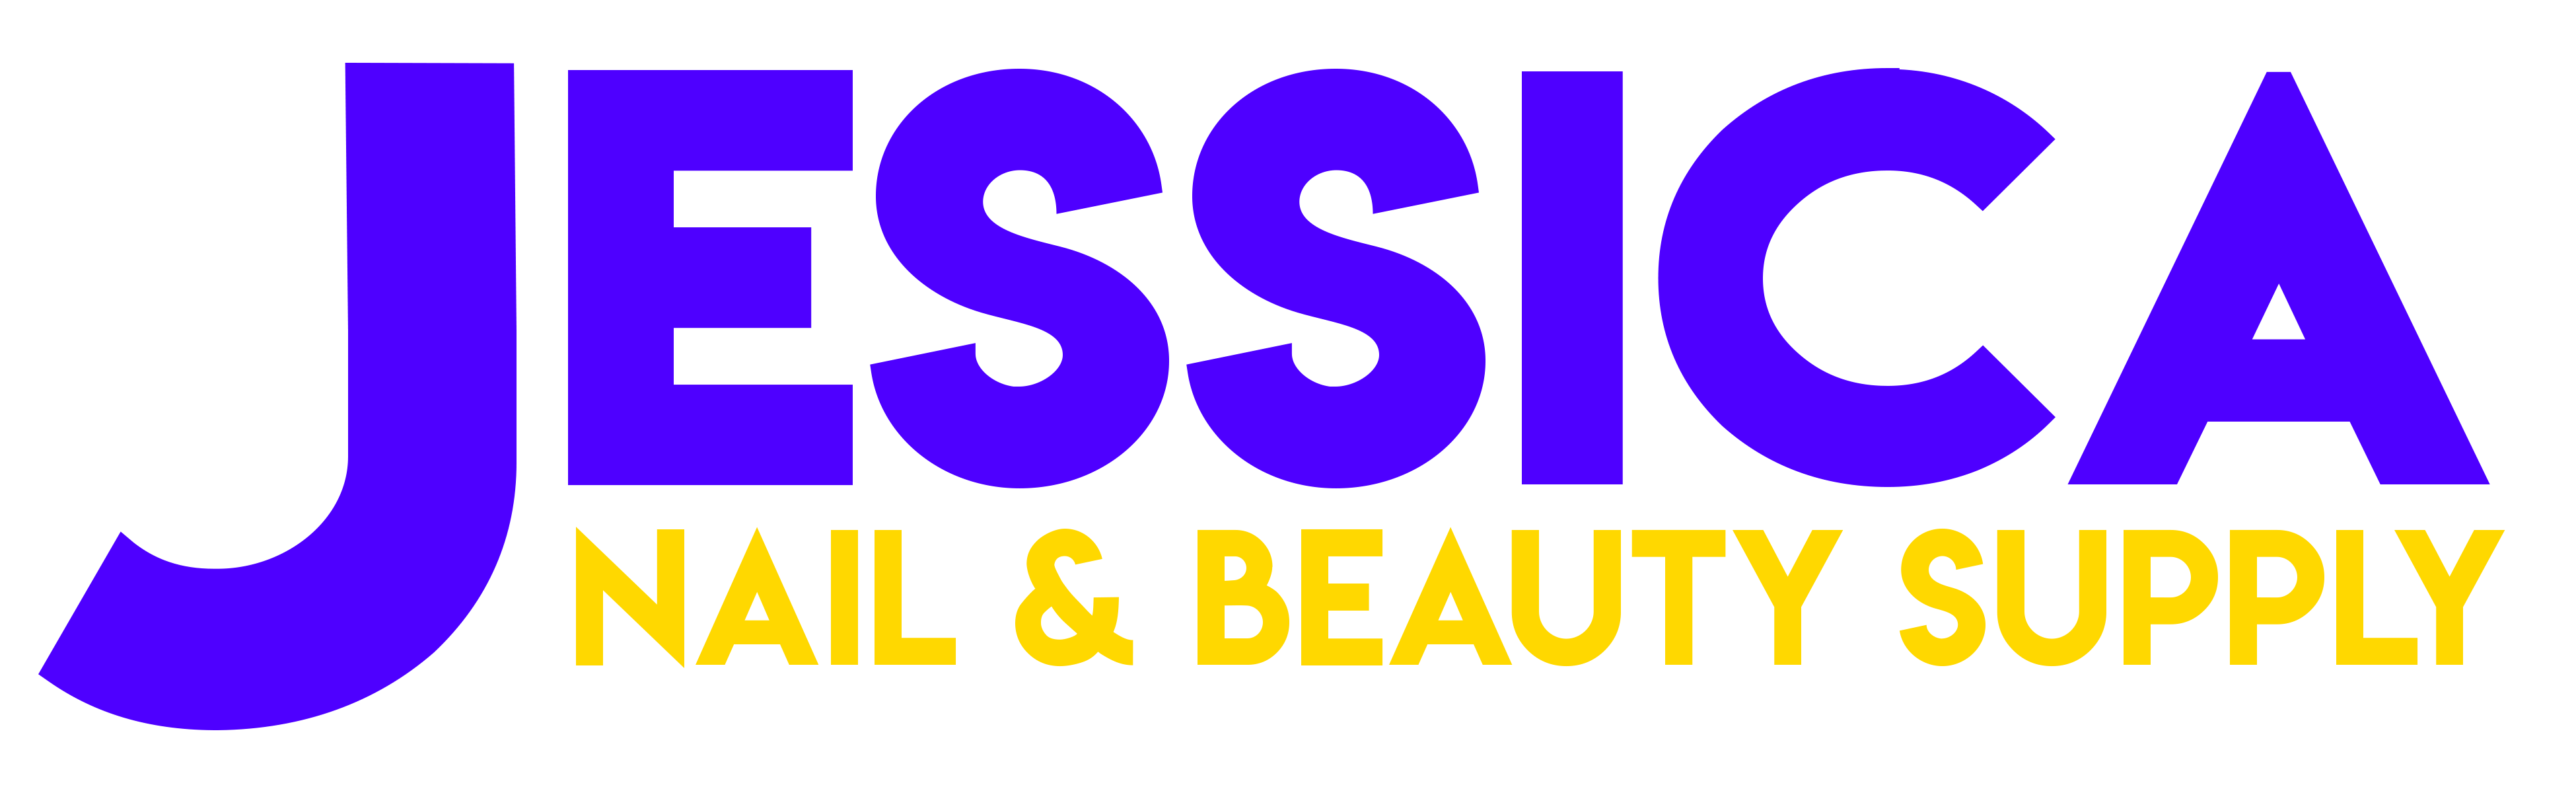 Professional Nail & Beauty Distrubtor  (B2B & B2C)